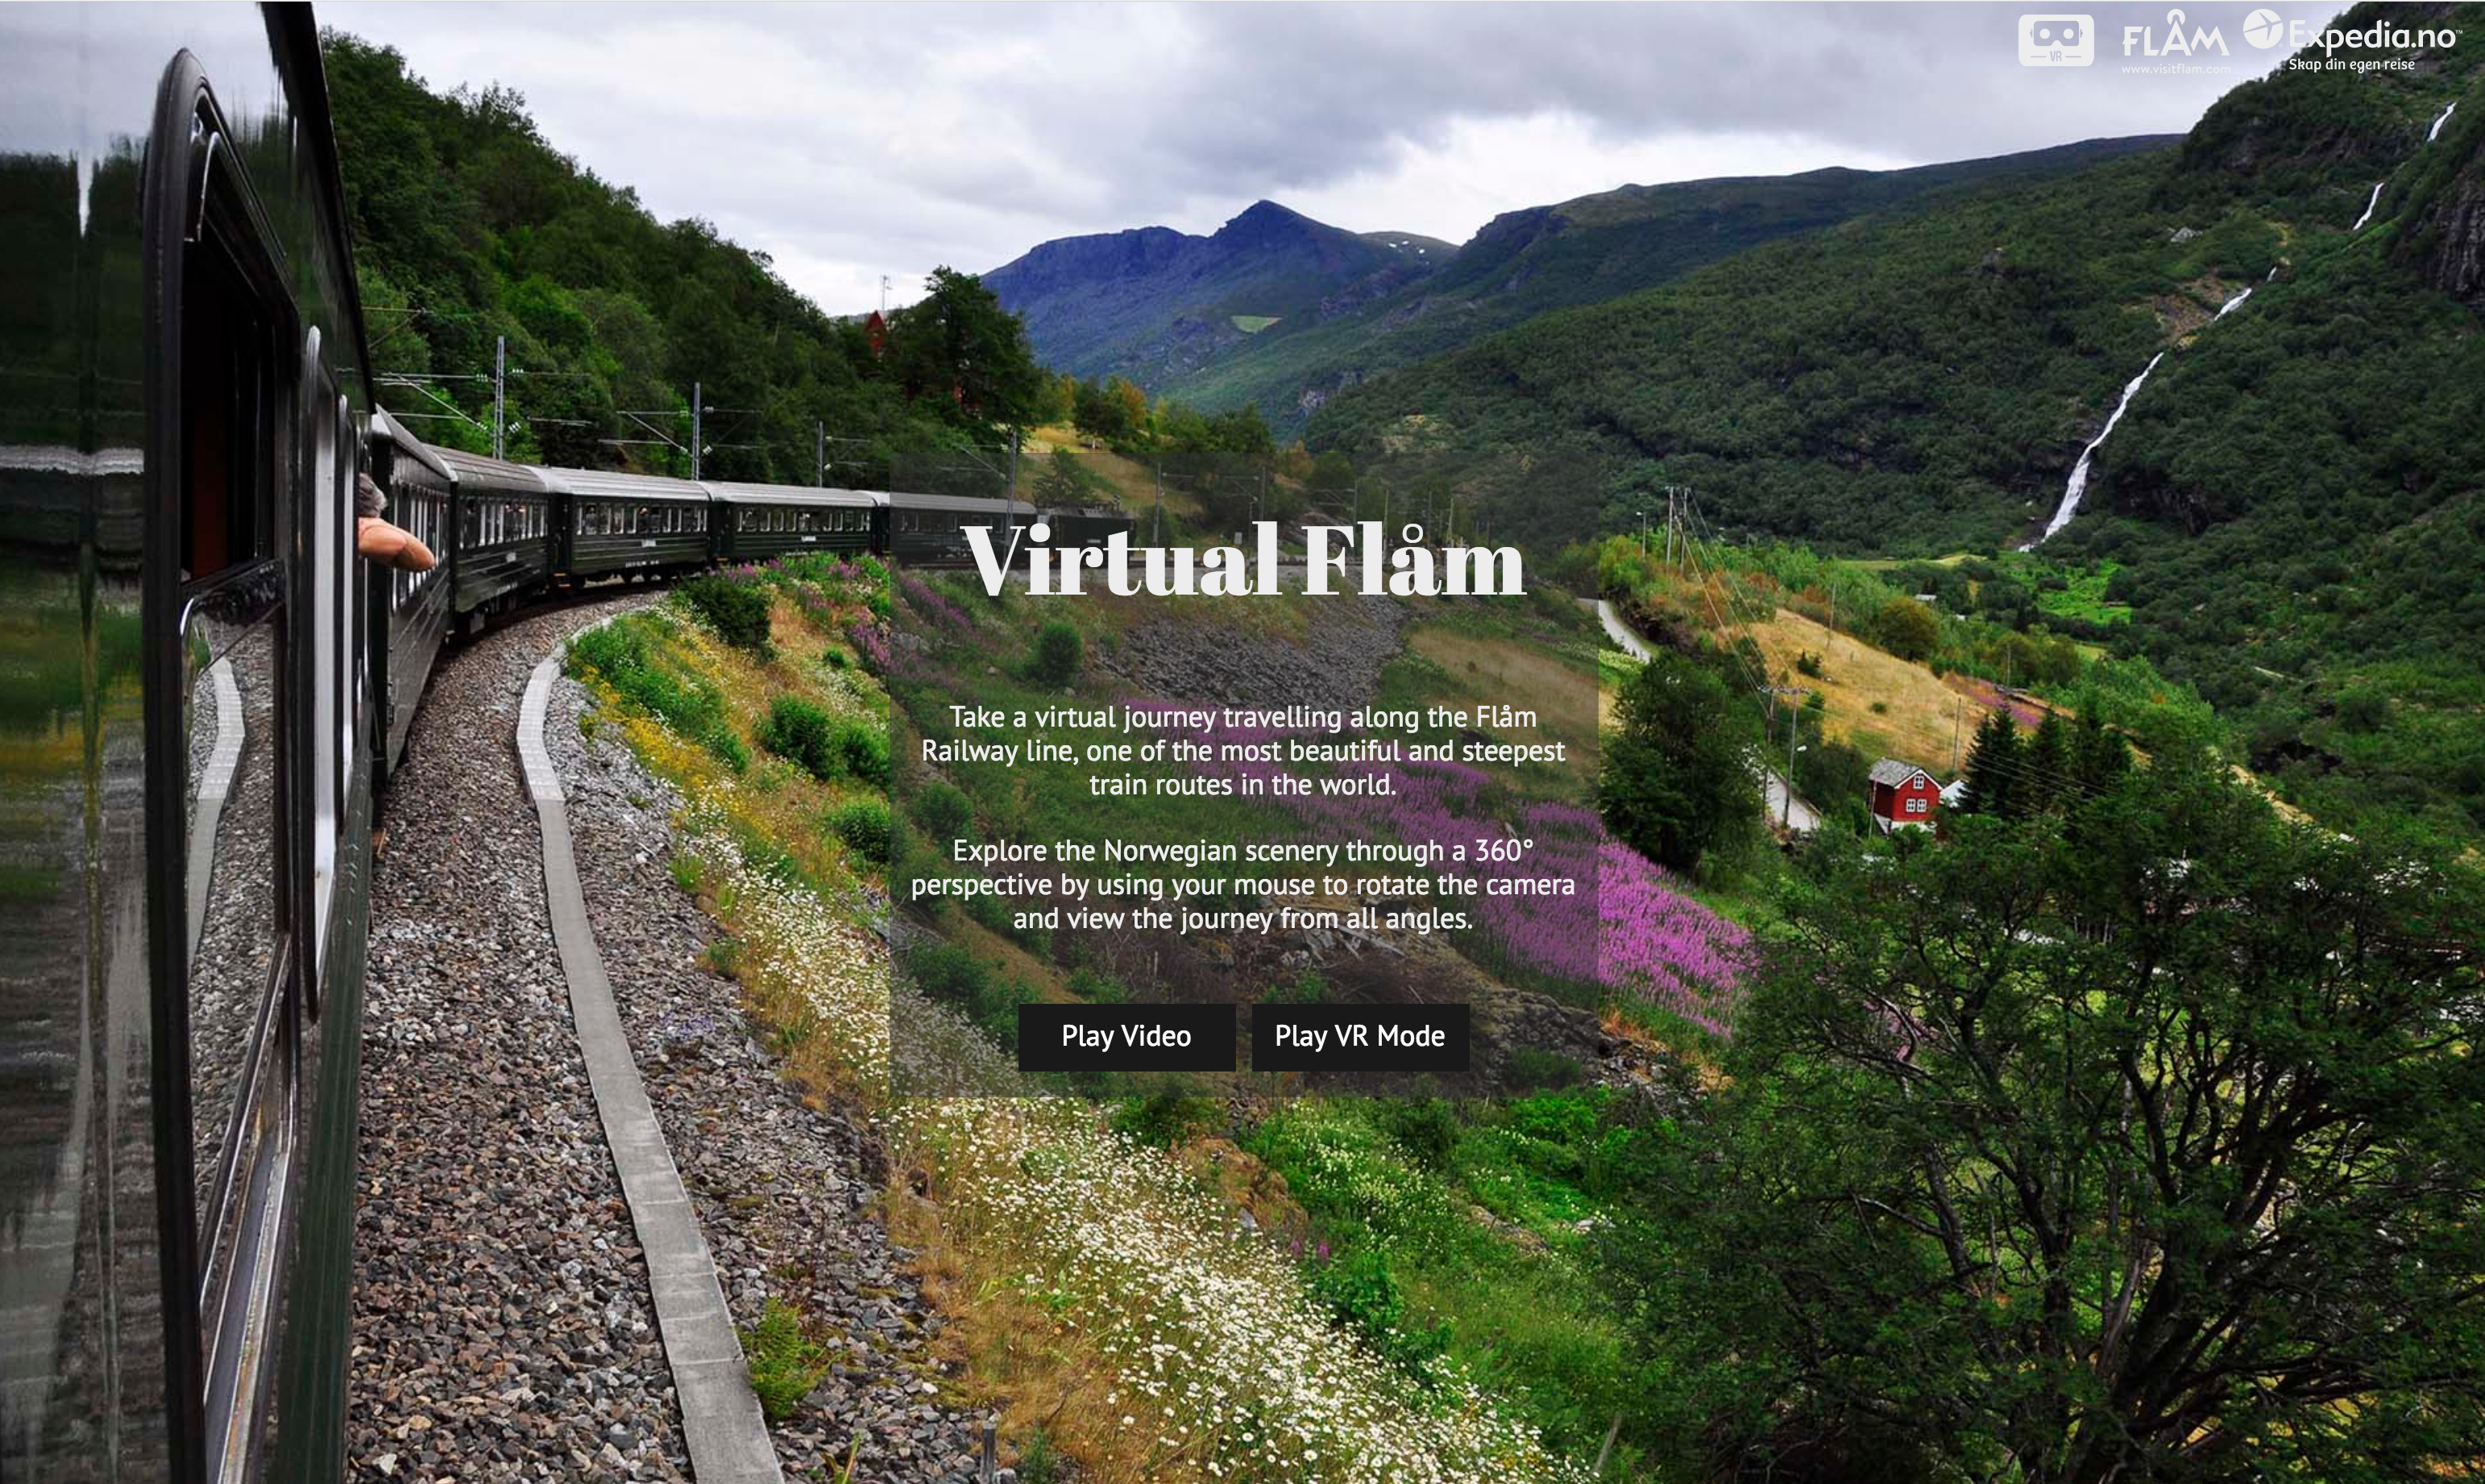 Expedia Norway - Virtual Flam